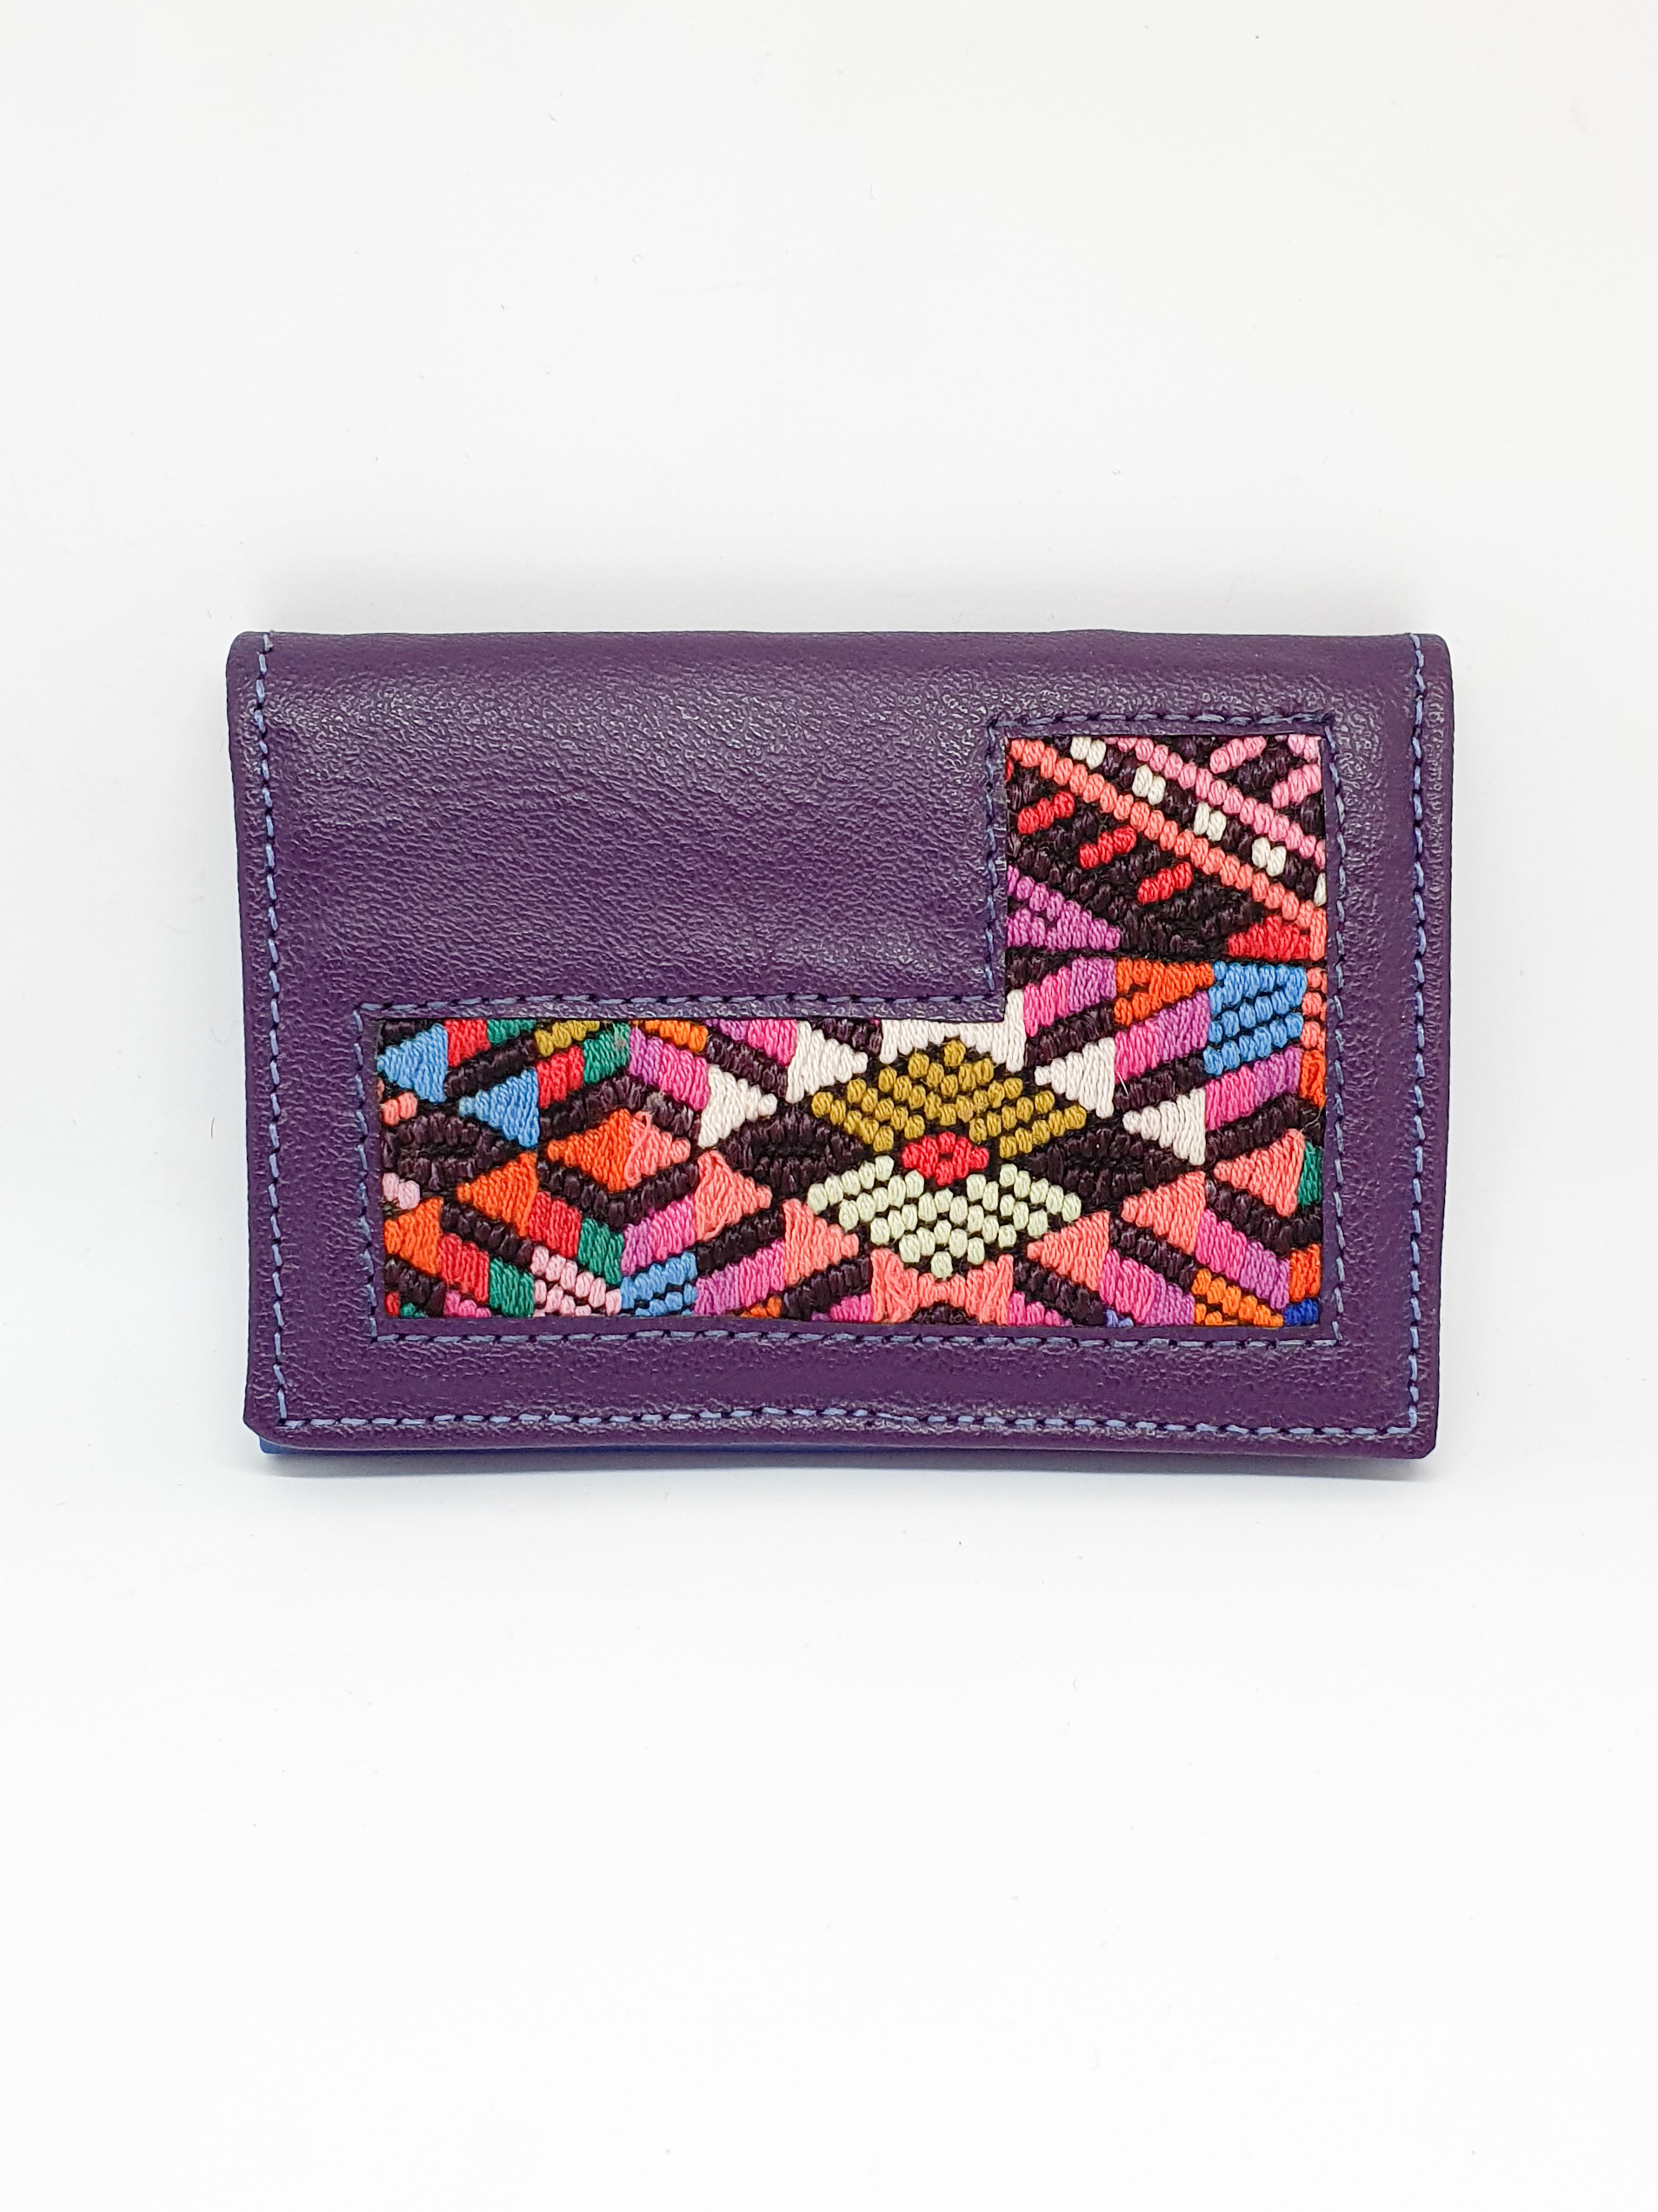 Coloíbri Wallet by Poncho's Bags   Inspire Me Latin America